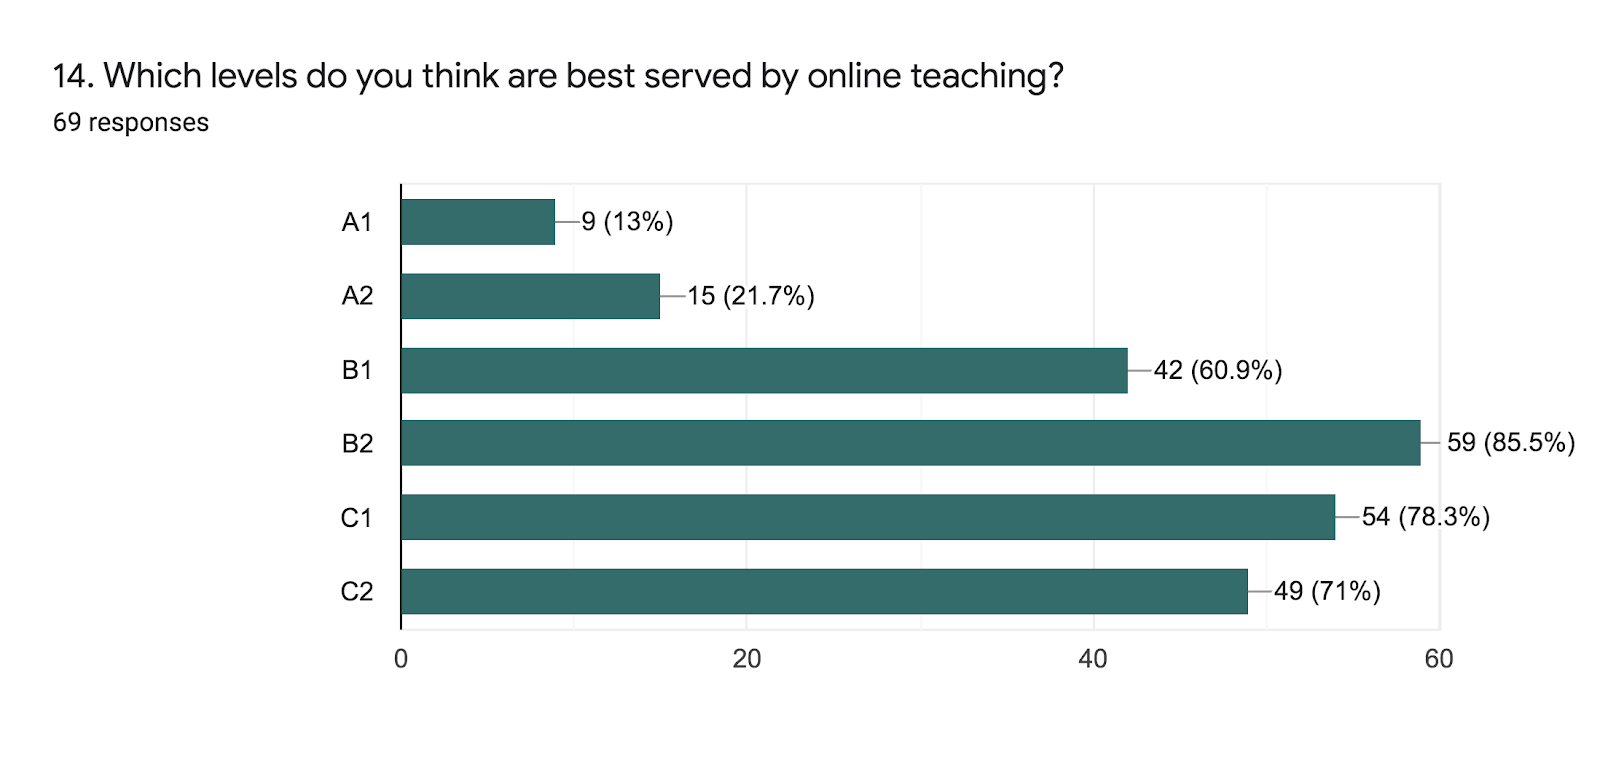 Forms response chart. Question title: 14. Which levels do you think are best served by online teaching?. Number of responses: 69 responses.